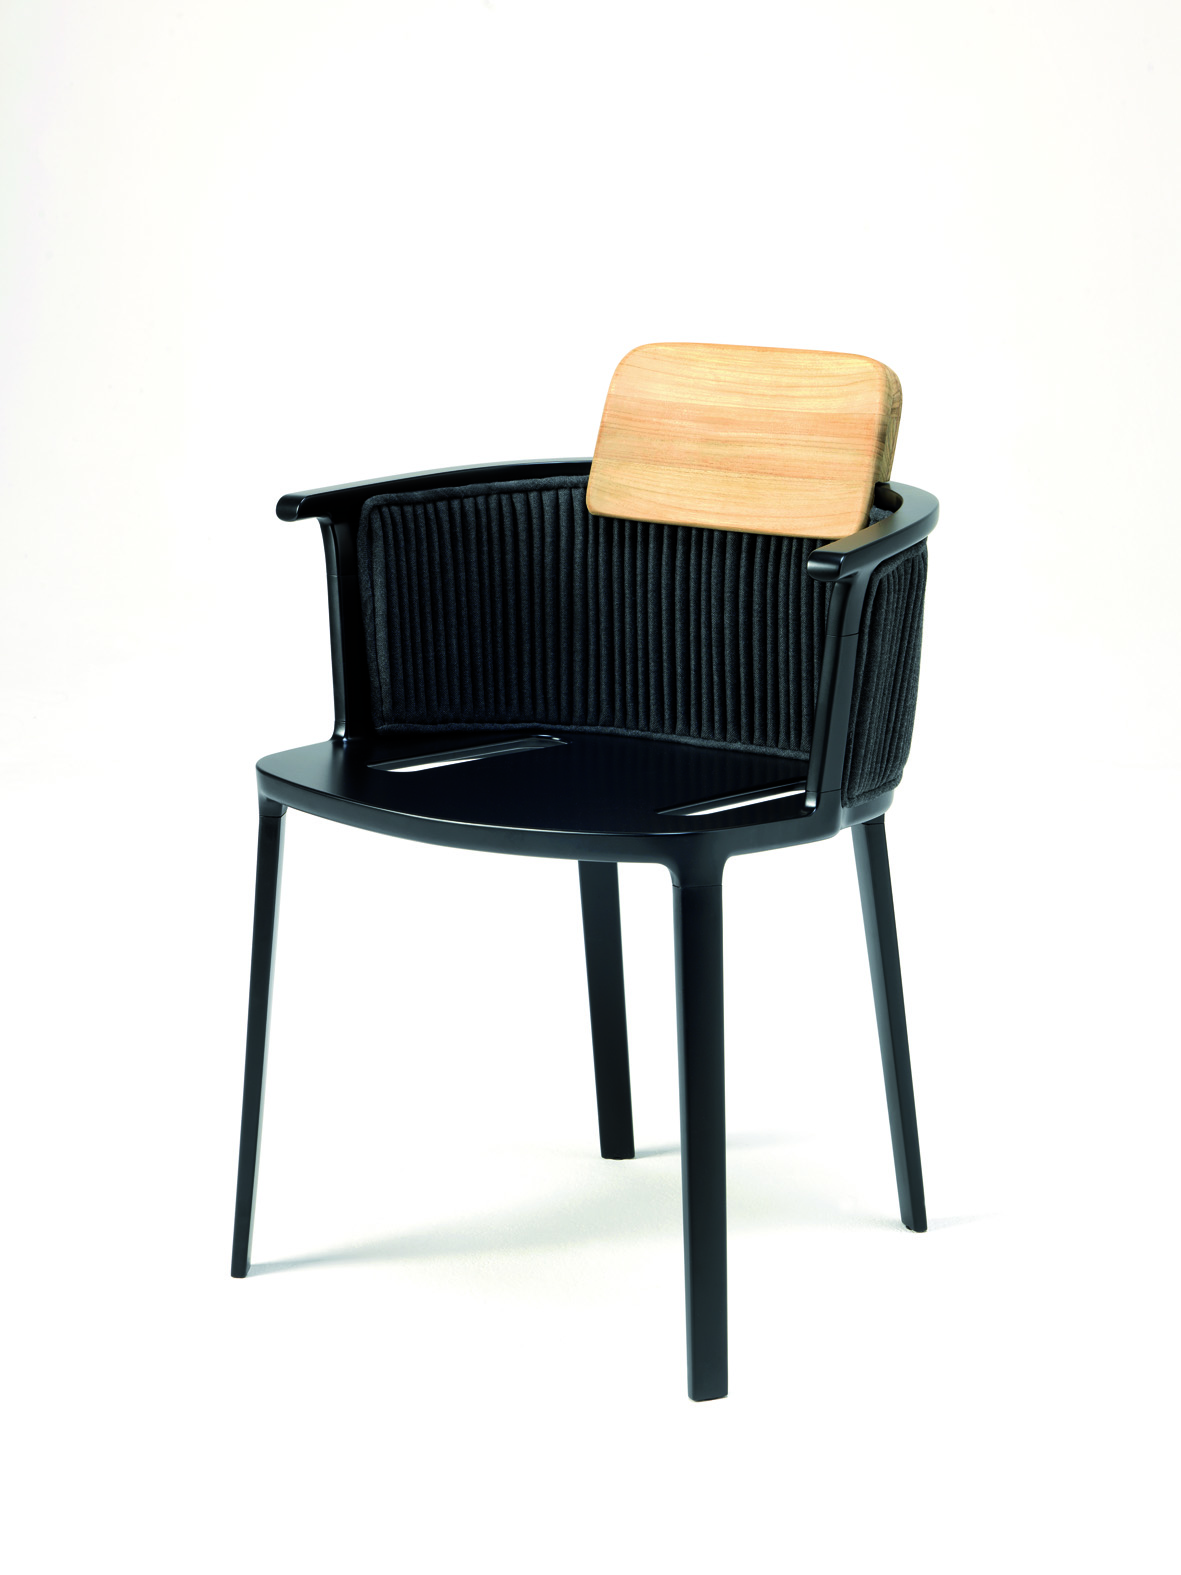 nicolette_chair_by_patrick_norguet_for_ethimo